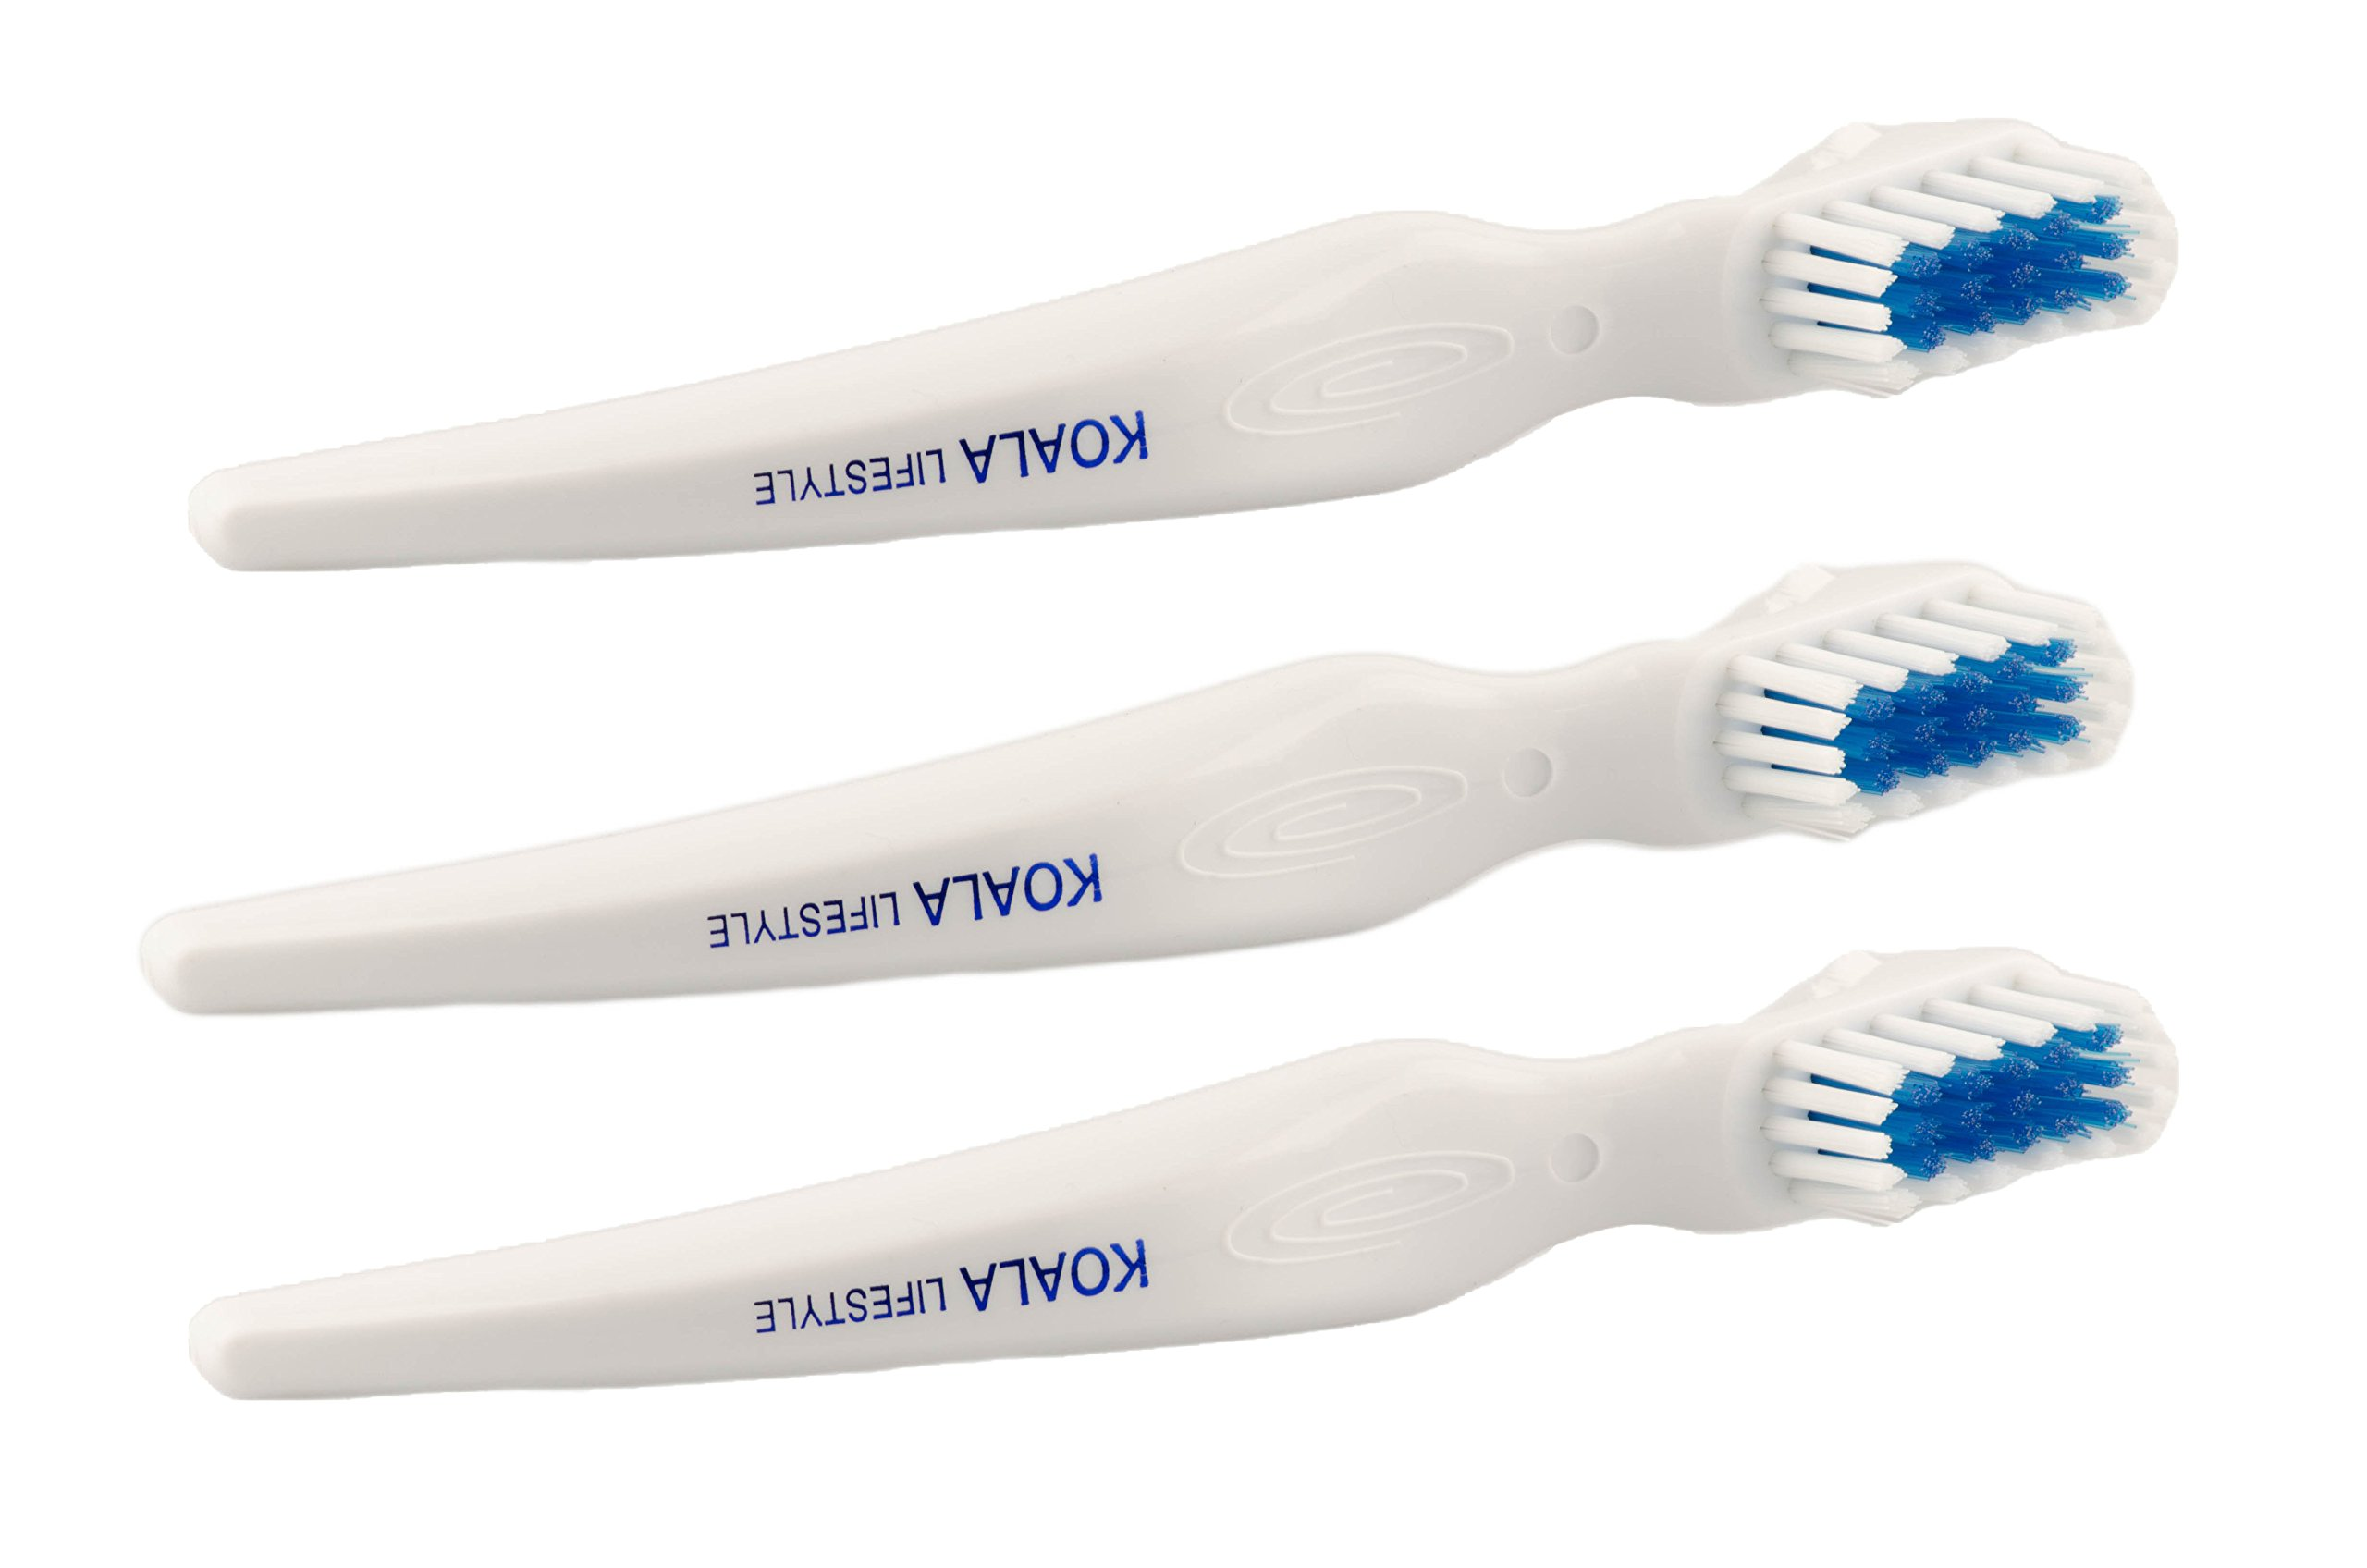 Koala Lifestyle Denture Cleaner Brushes with Covers | Cleaning Toothbrush for Dentures, False Teeth, Night Guards for Teeth Grinding, Dental Devices, and Mouth Guards | 3 Pieces, White/Blue